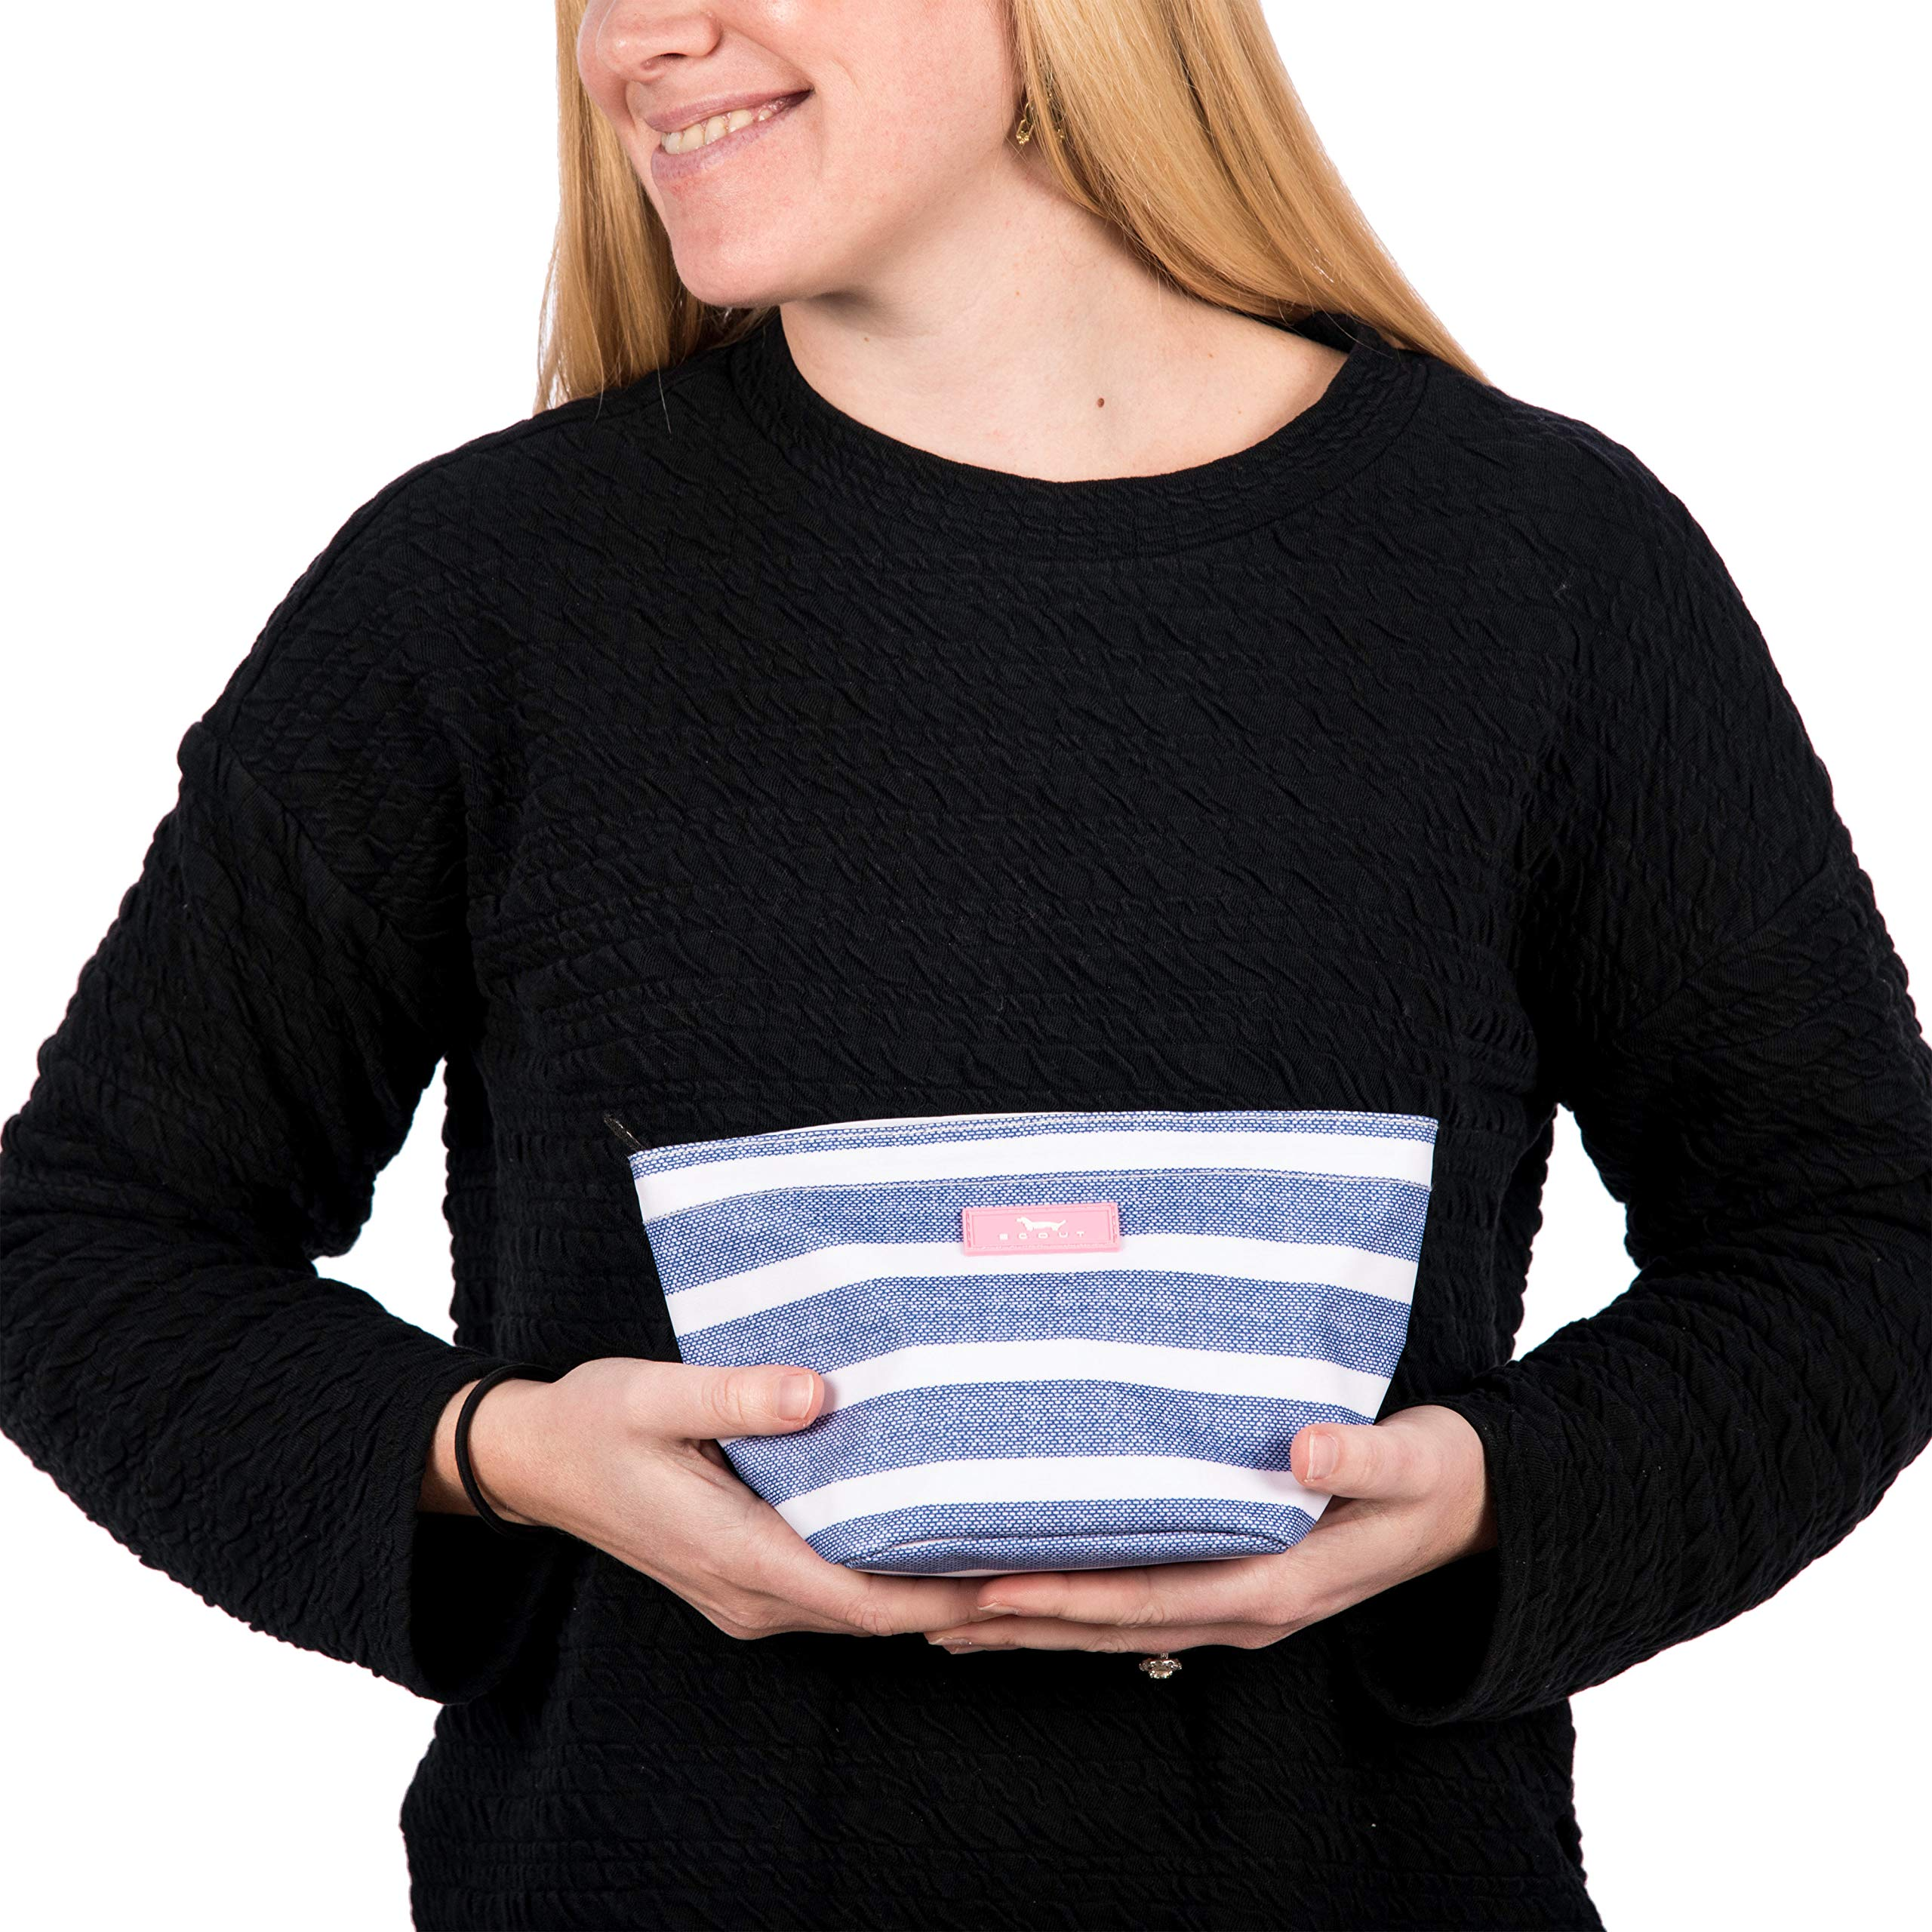 SCOUT Crown Jewels Cosmetic, Makeup & Small Accessory Bag, Water Resistant, Zips Closed, Stripe Right by SCOUT (Image #5)